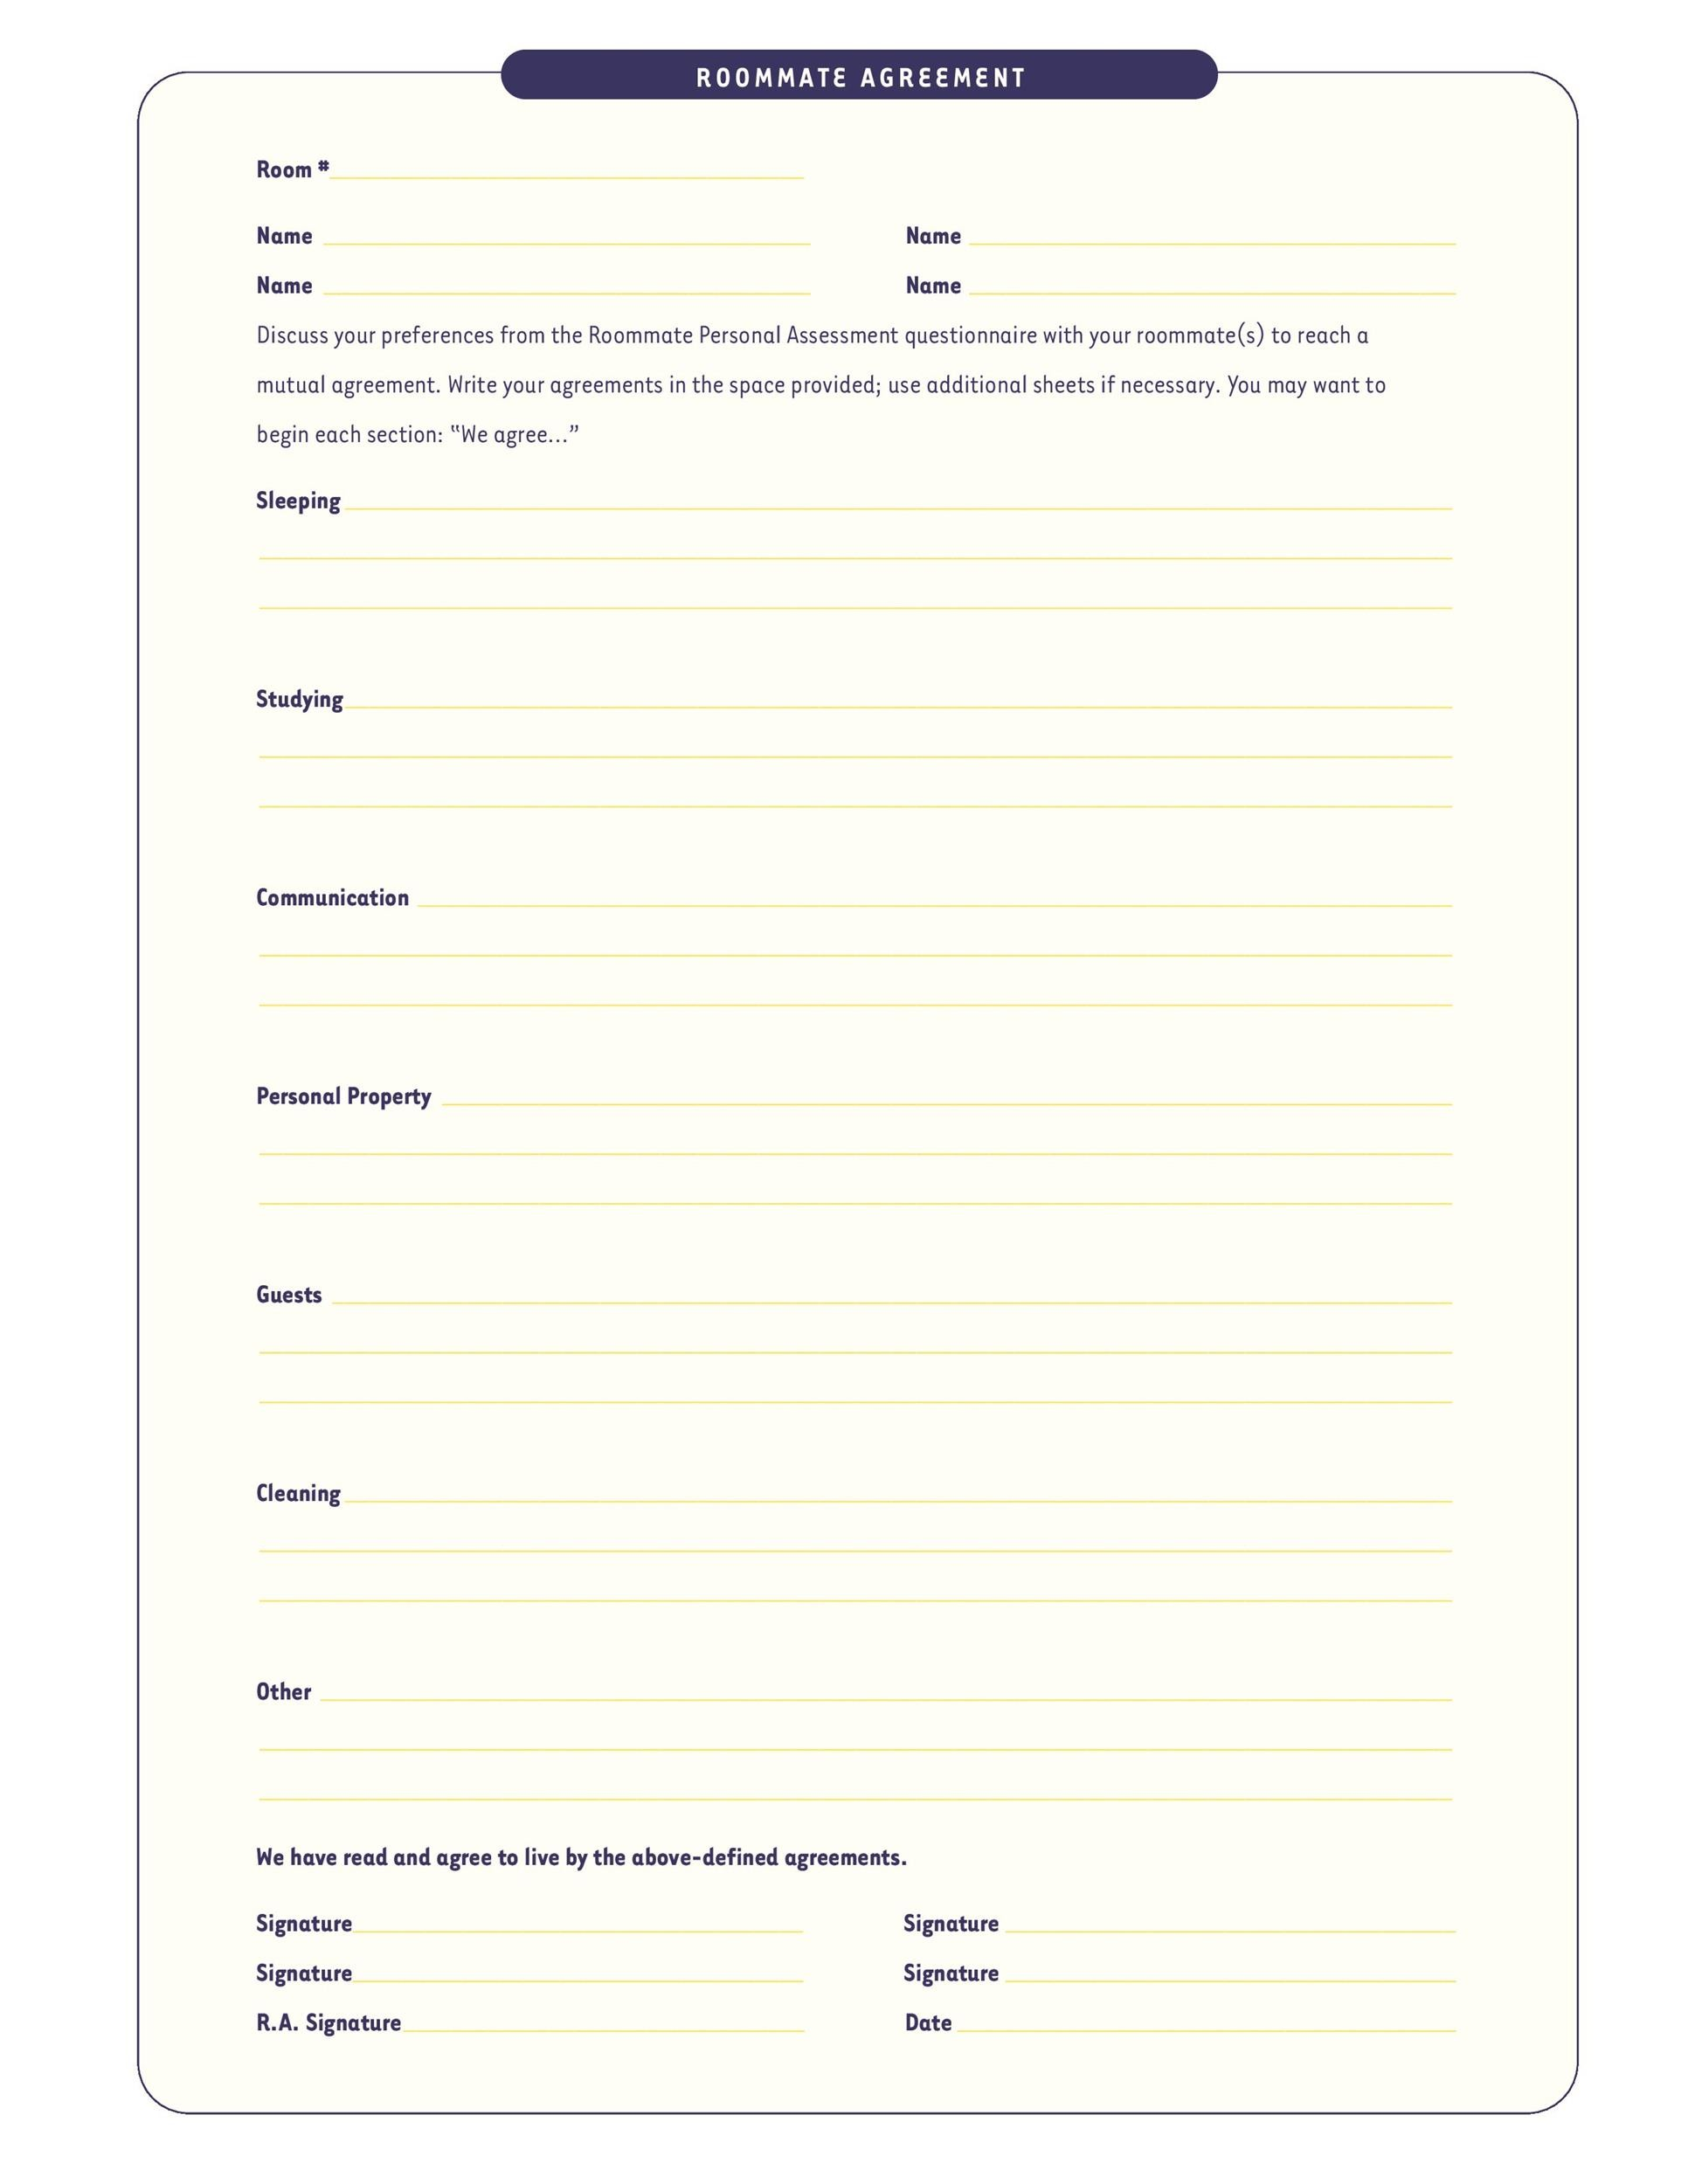 Free roommate agreement template 38